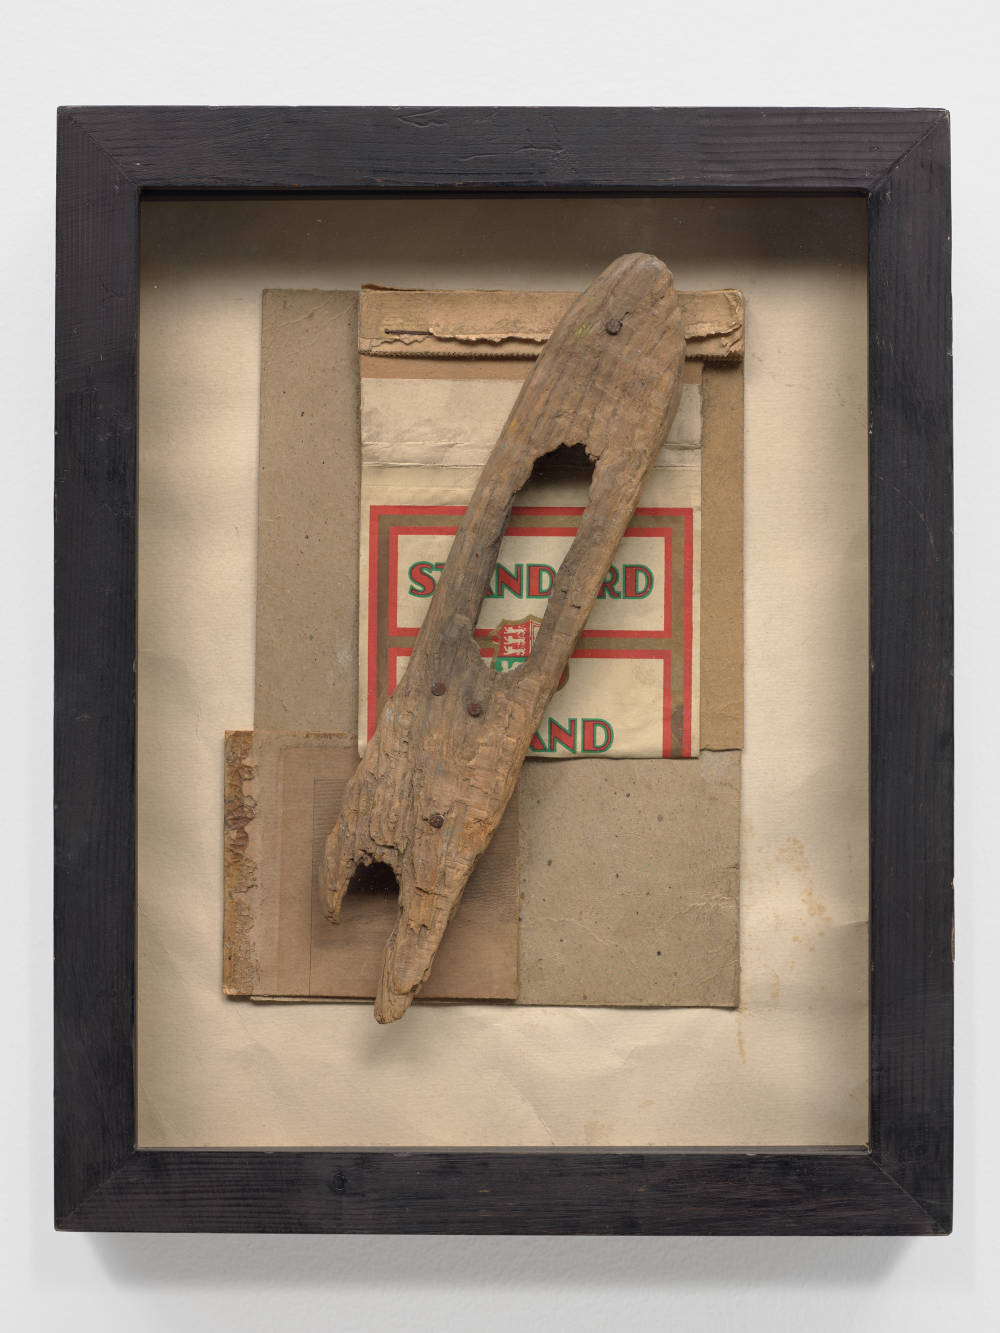 Kurt Schwitters, Untitled (Standard with wood), 1947